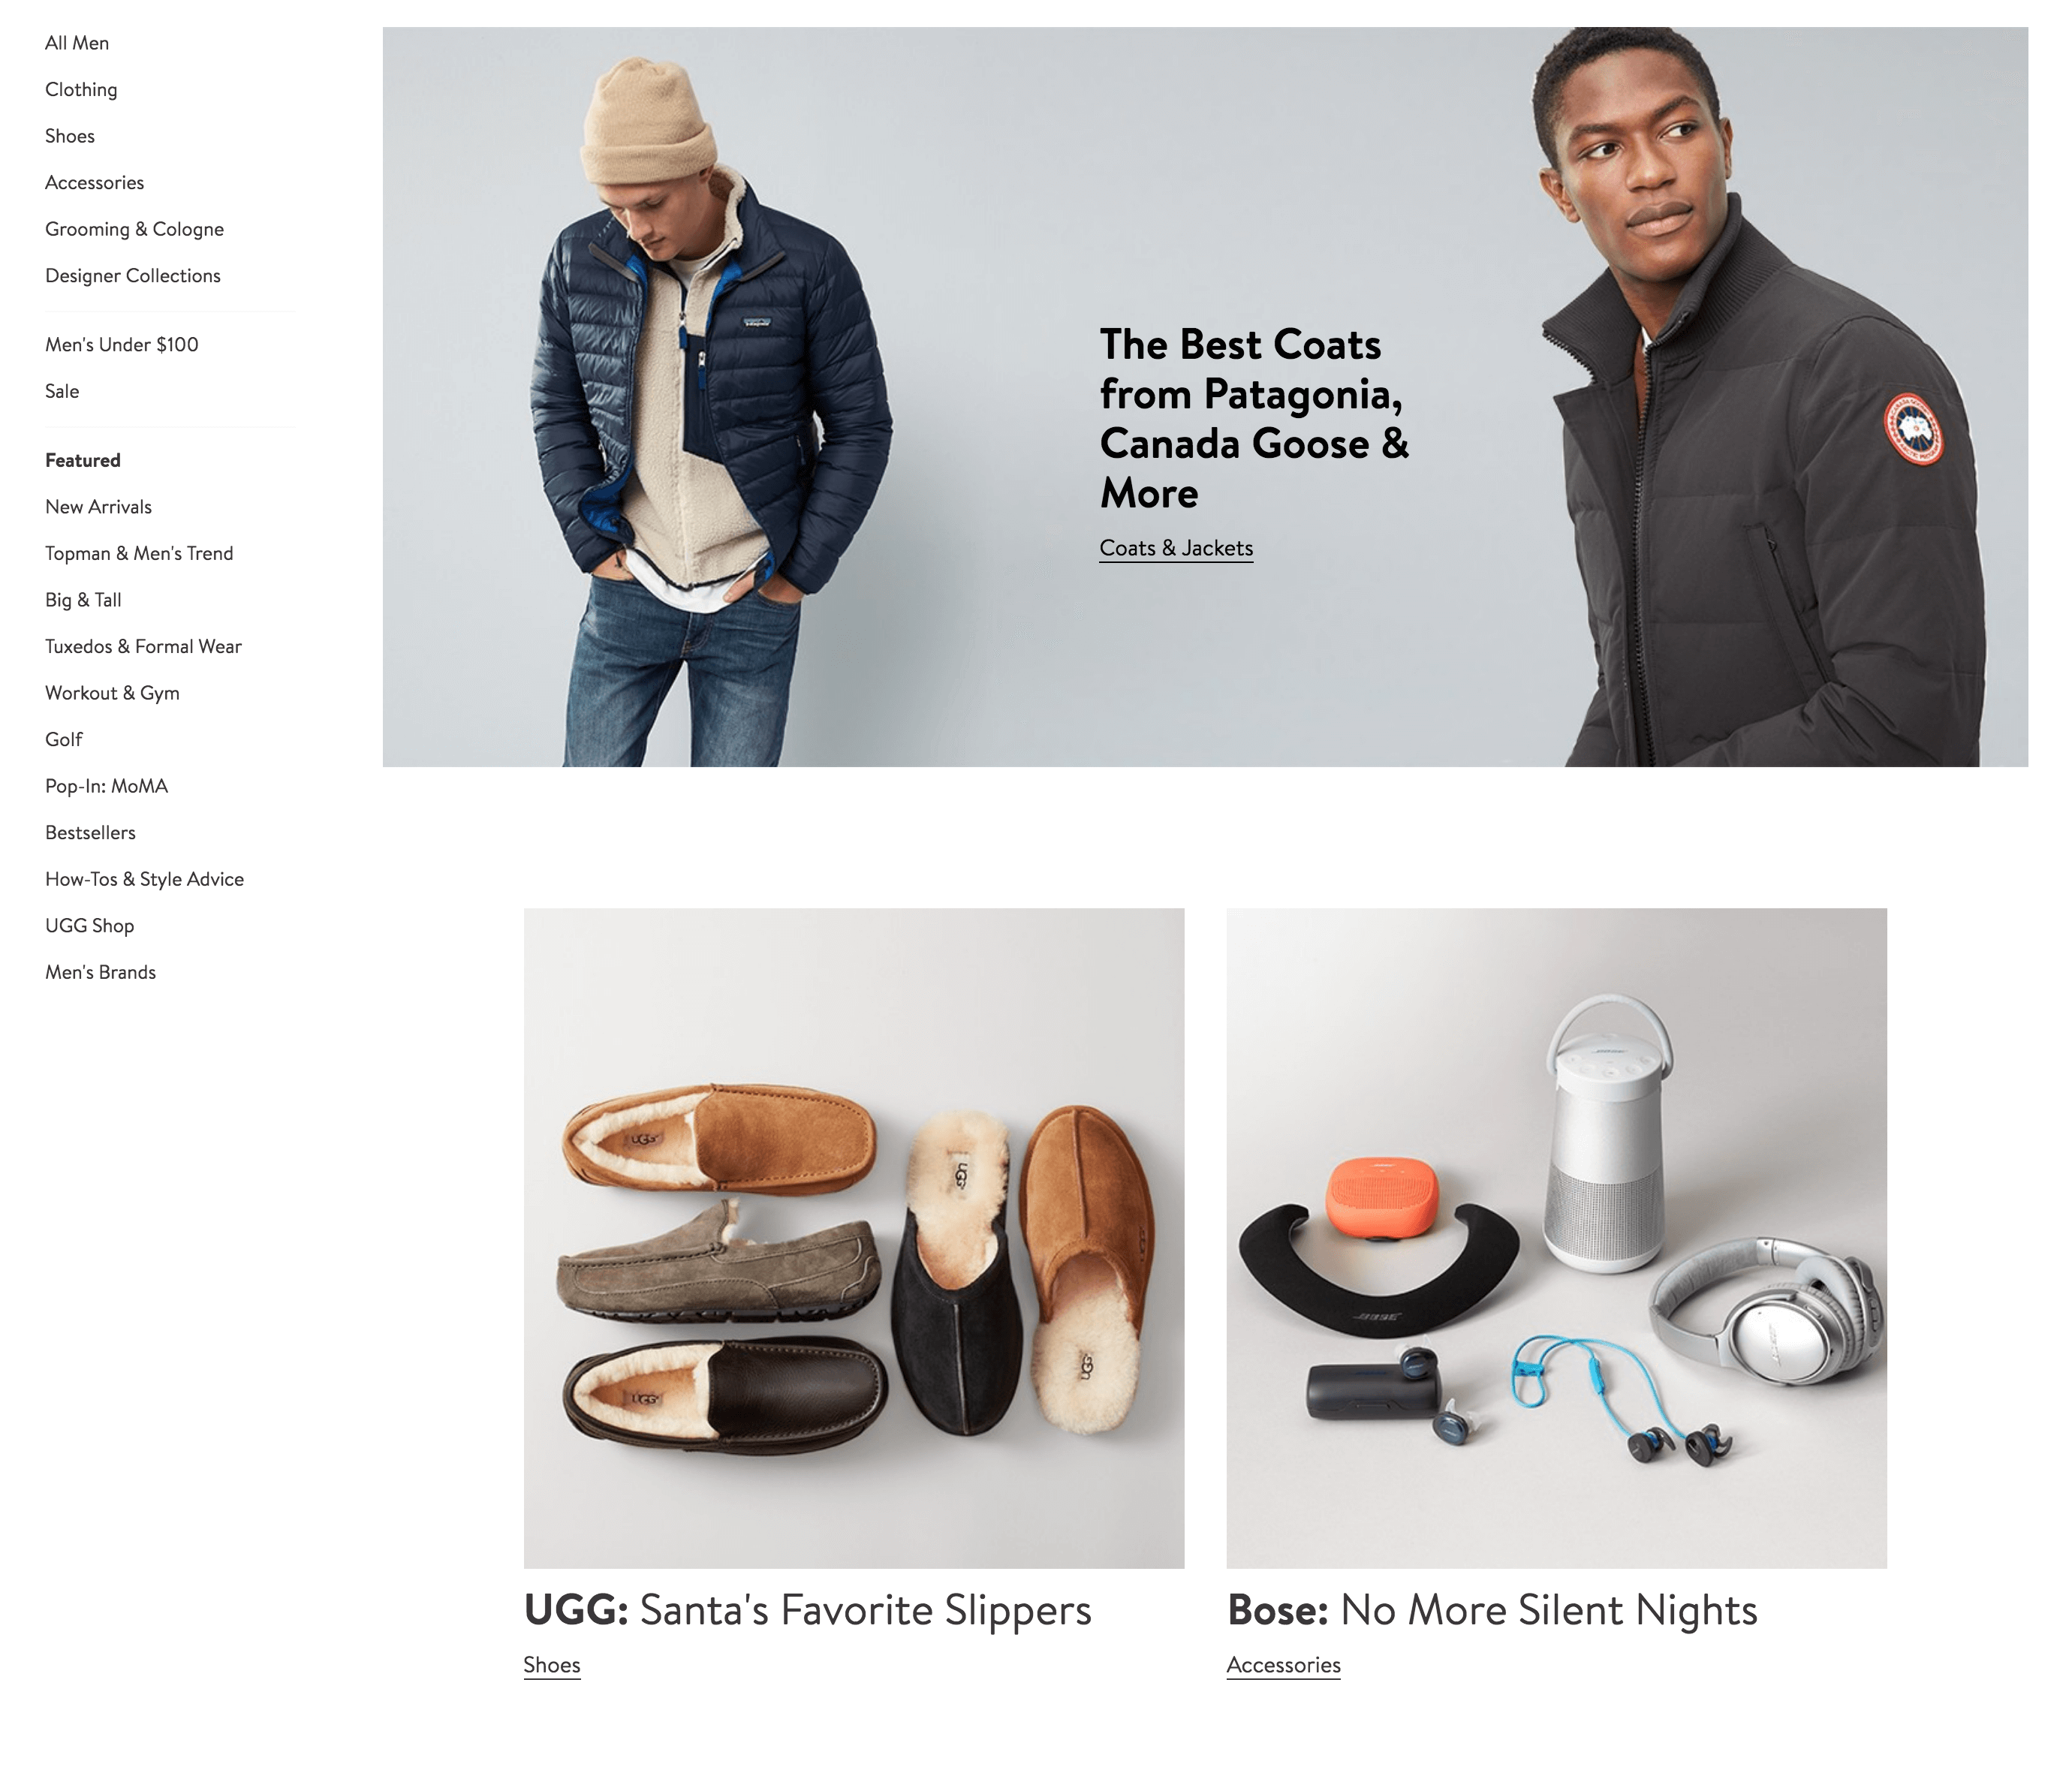 2nd screenshot of a Nordstrom topic preview page